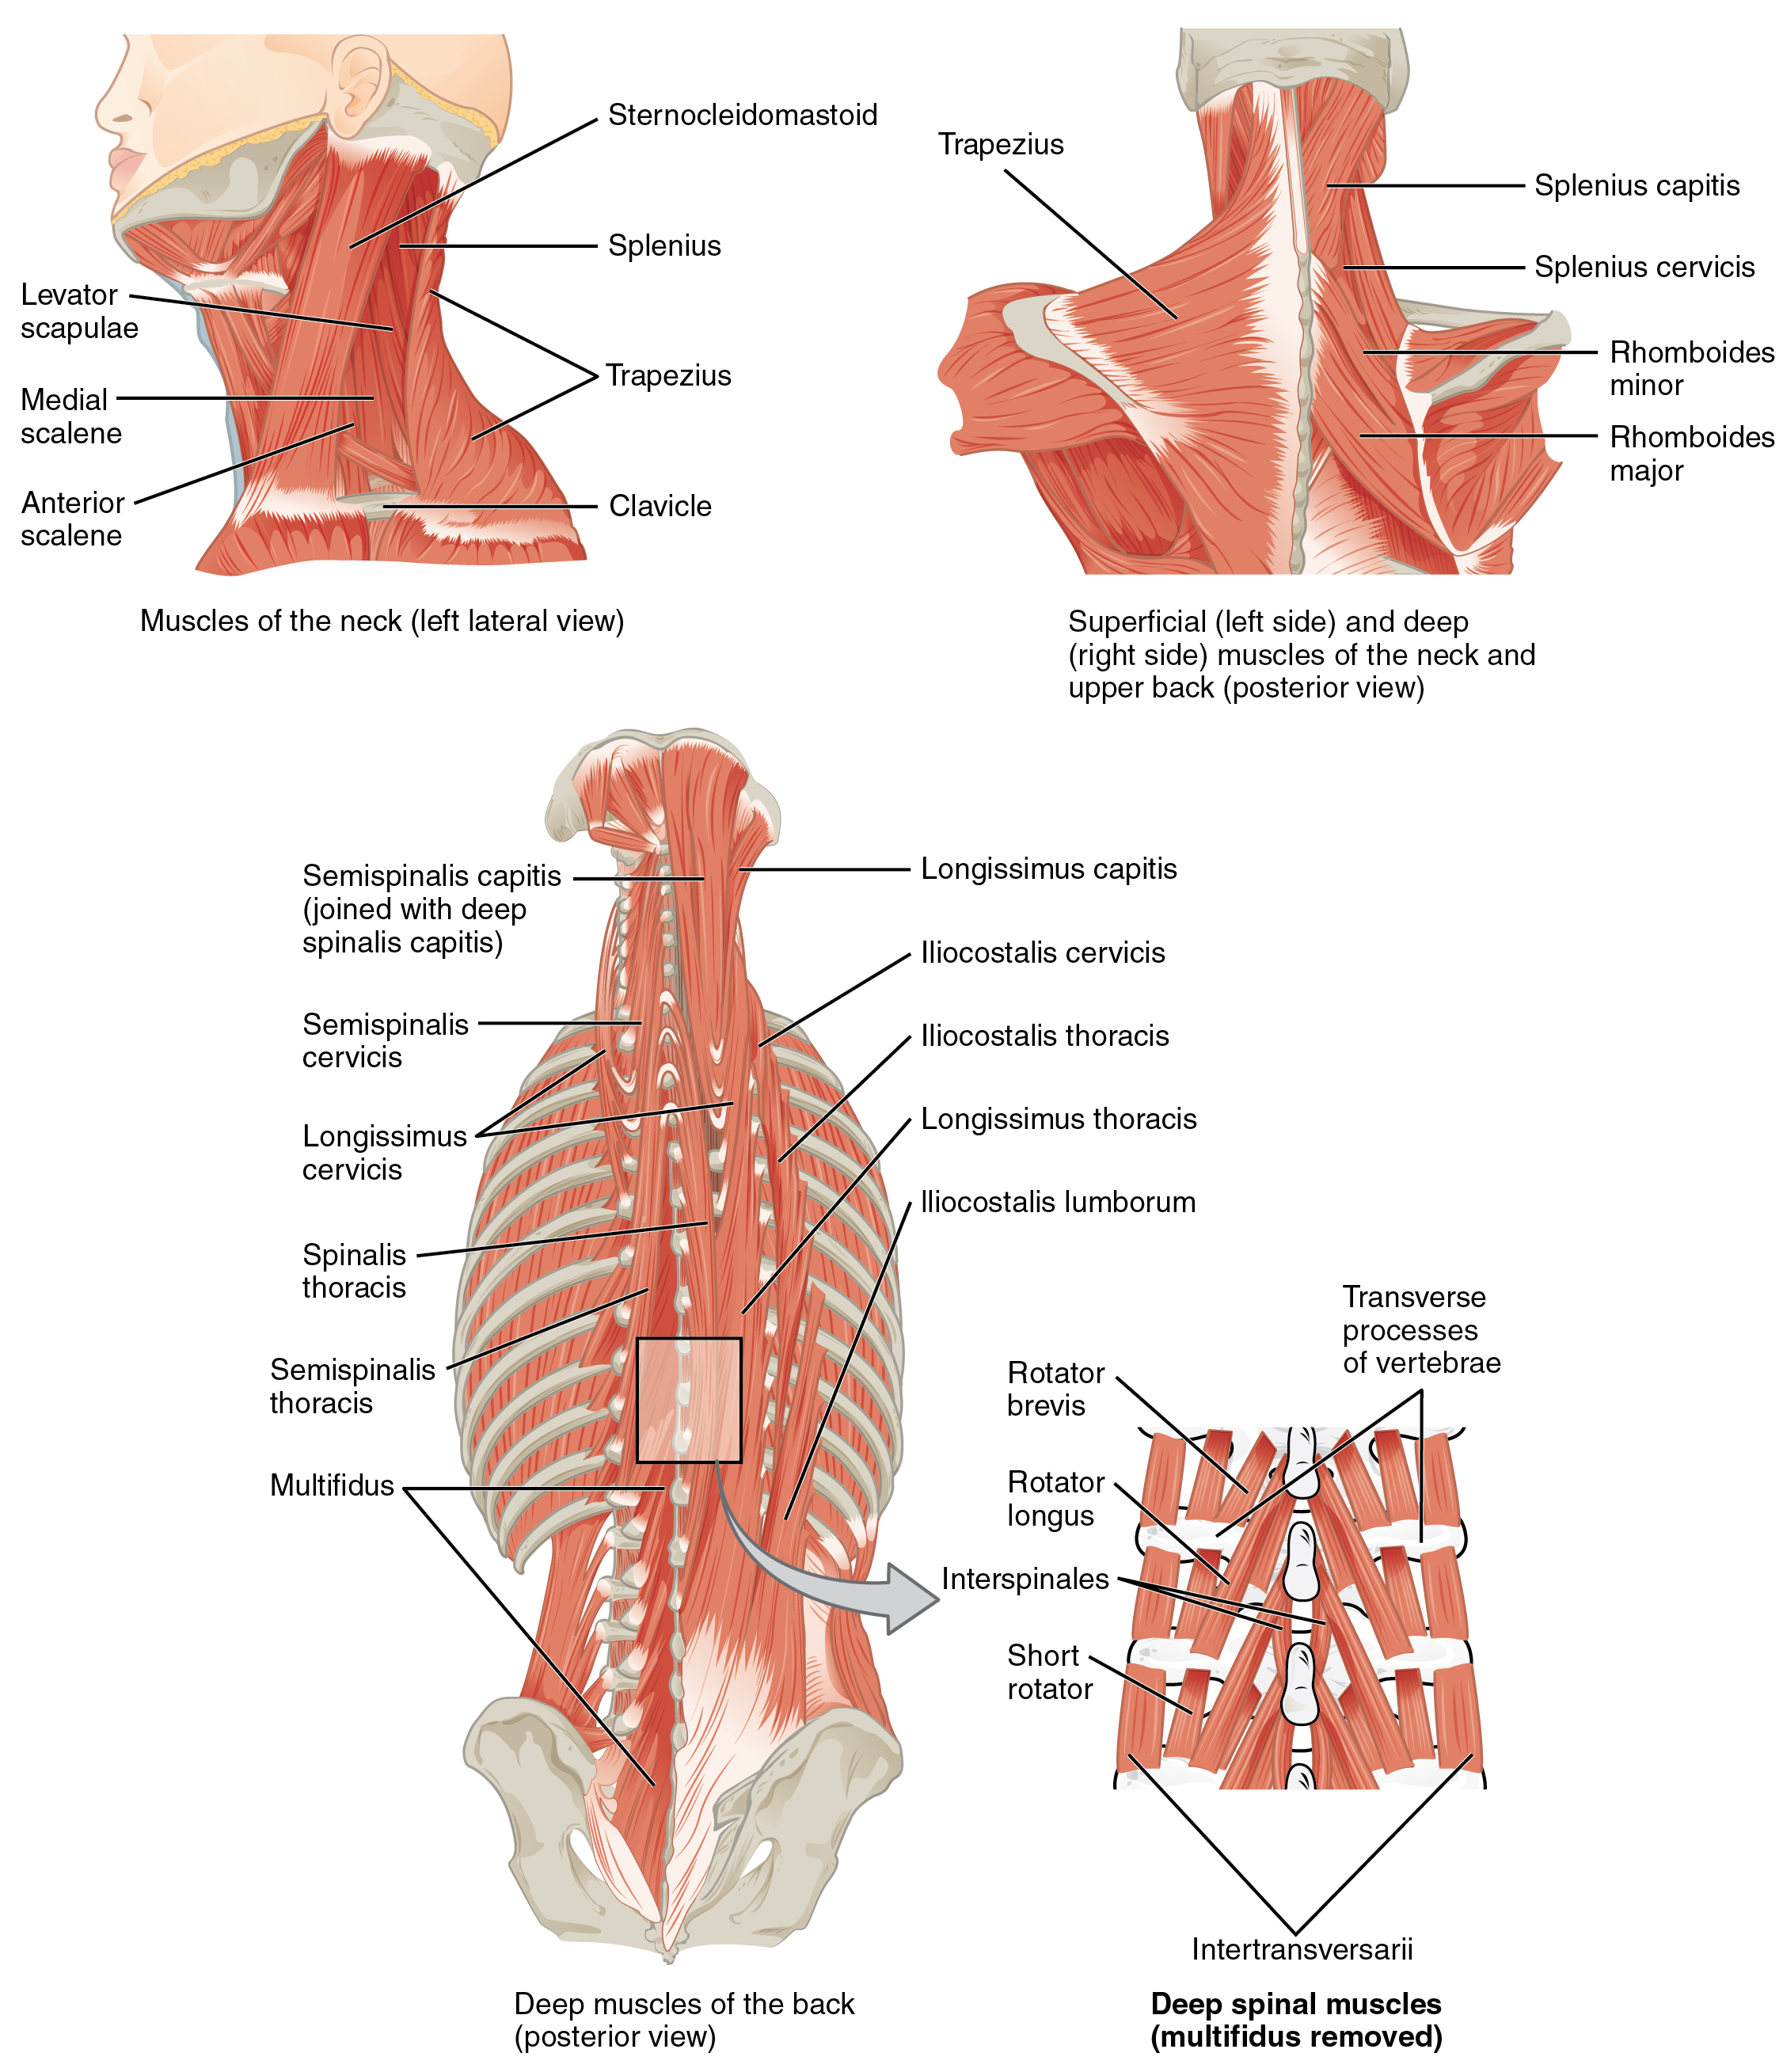 Topographic Anatomy of the Back | The Lecturio Medical Online Library